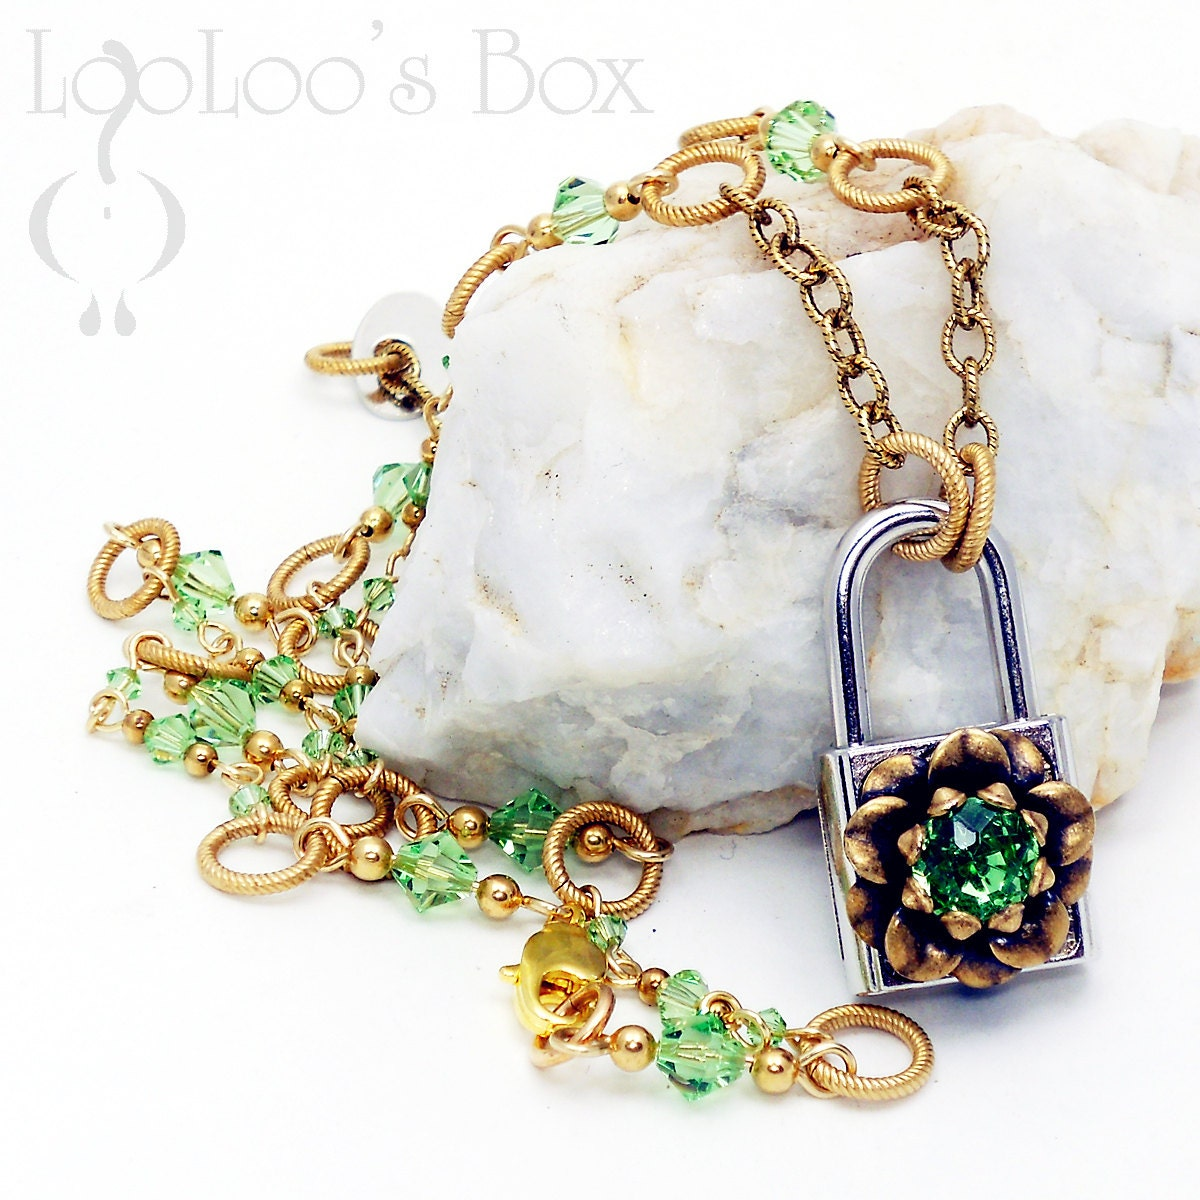 LOCK & KEY Floral Padlock Necklace Brass Ox Flower Peridot Crystal Rhinestone Victorian Steampunk N371 by Robin Delargy LooLoos Box - LooLoosBox